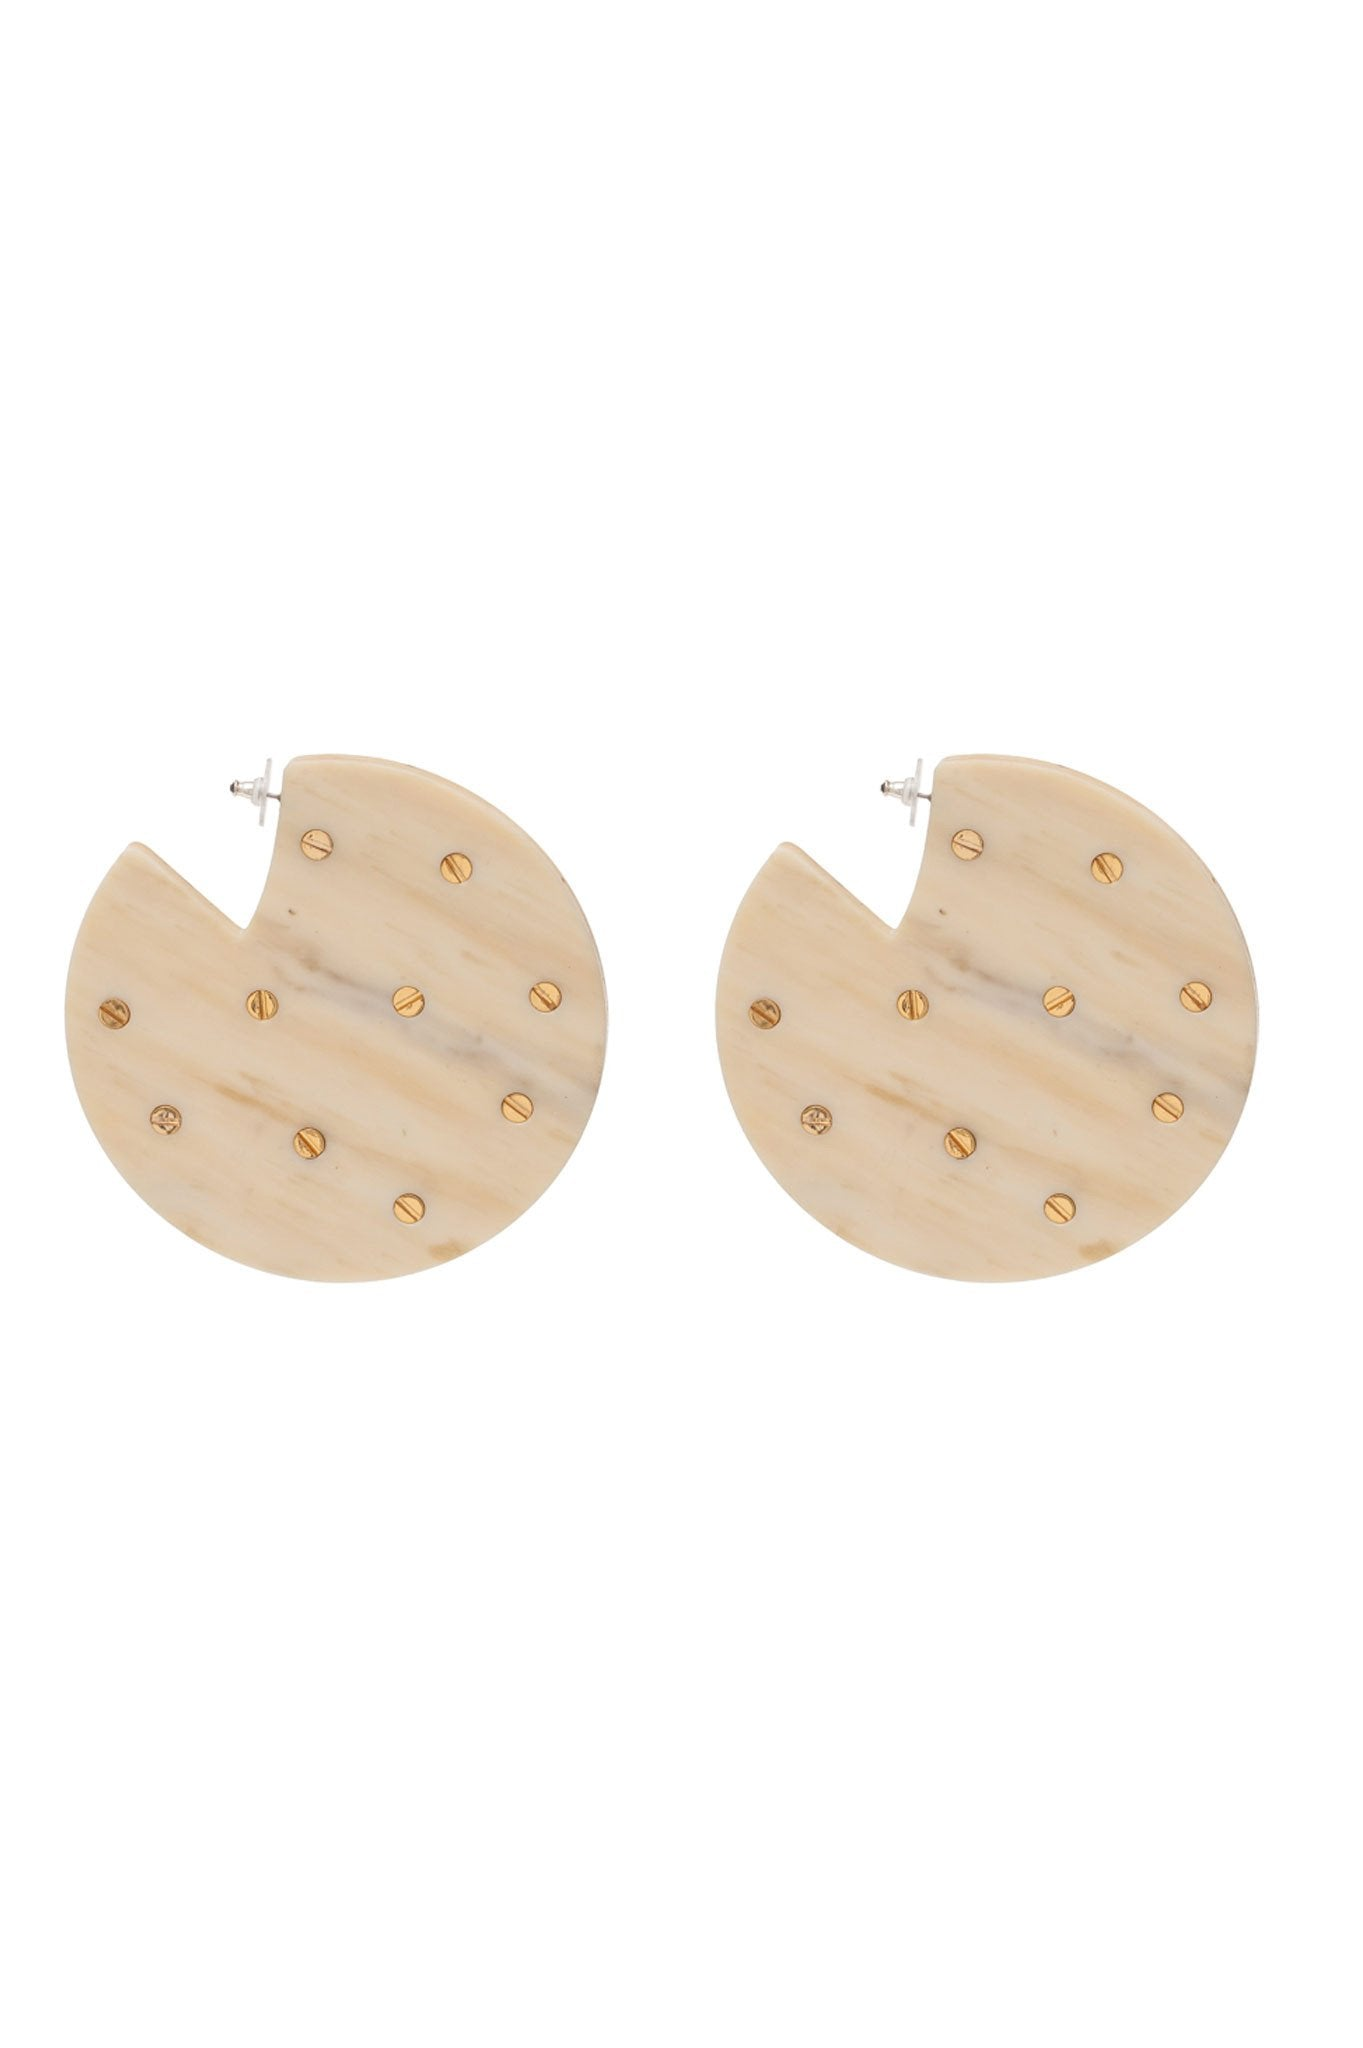 BONE CIRCULAR EARRINGS